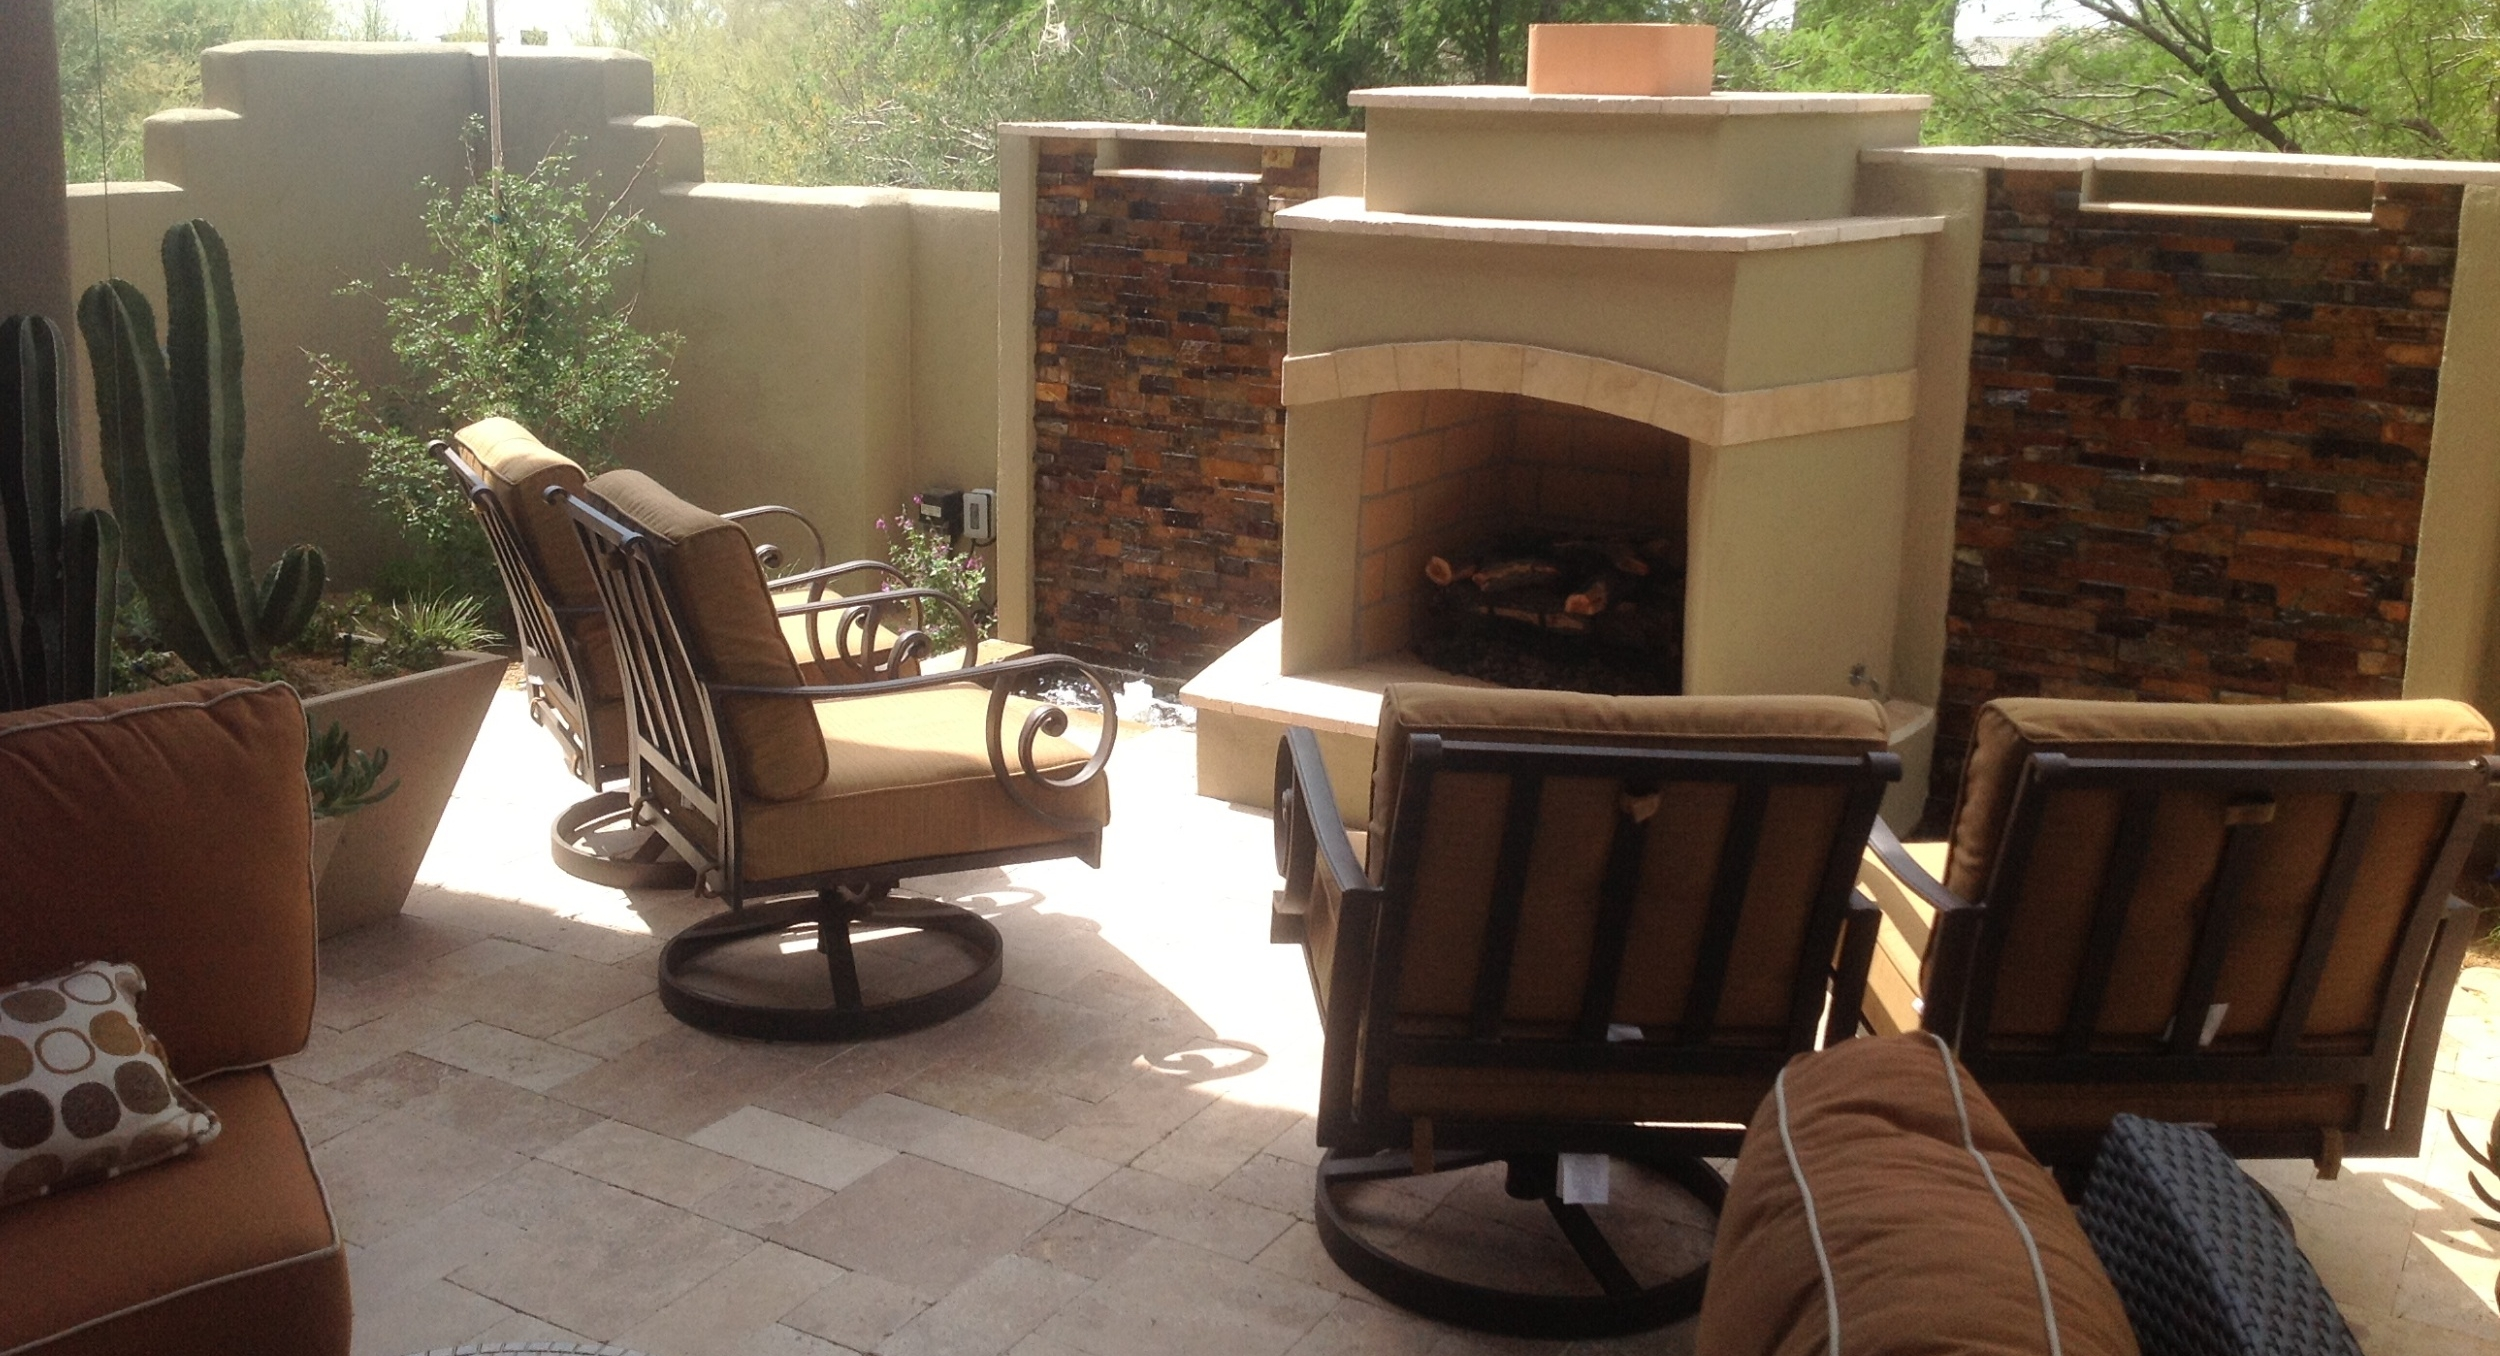 Combinging waterfalls with outdoor fireplaces allows you to have more outdoor living room features in very limited space. This client's condo porch and backyard are all one patio with this stone and stucco design against the private property line privacy wall.